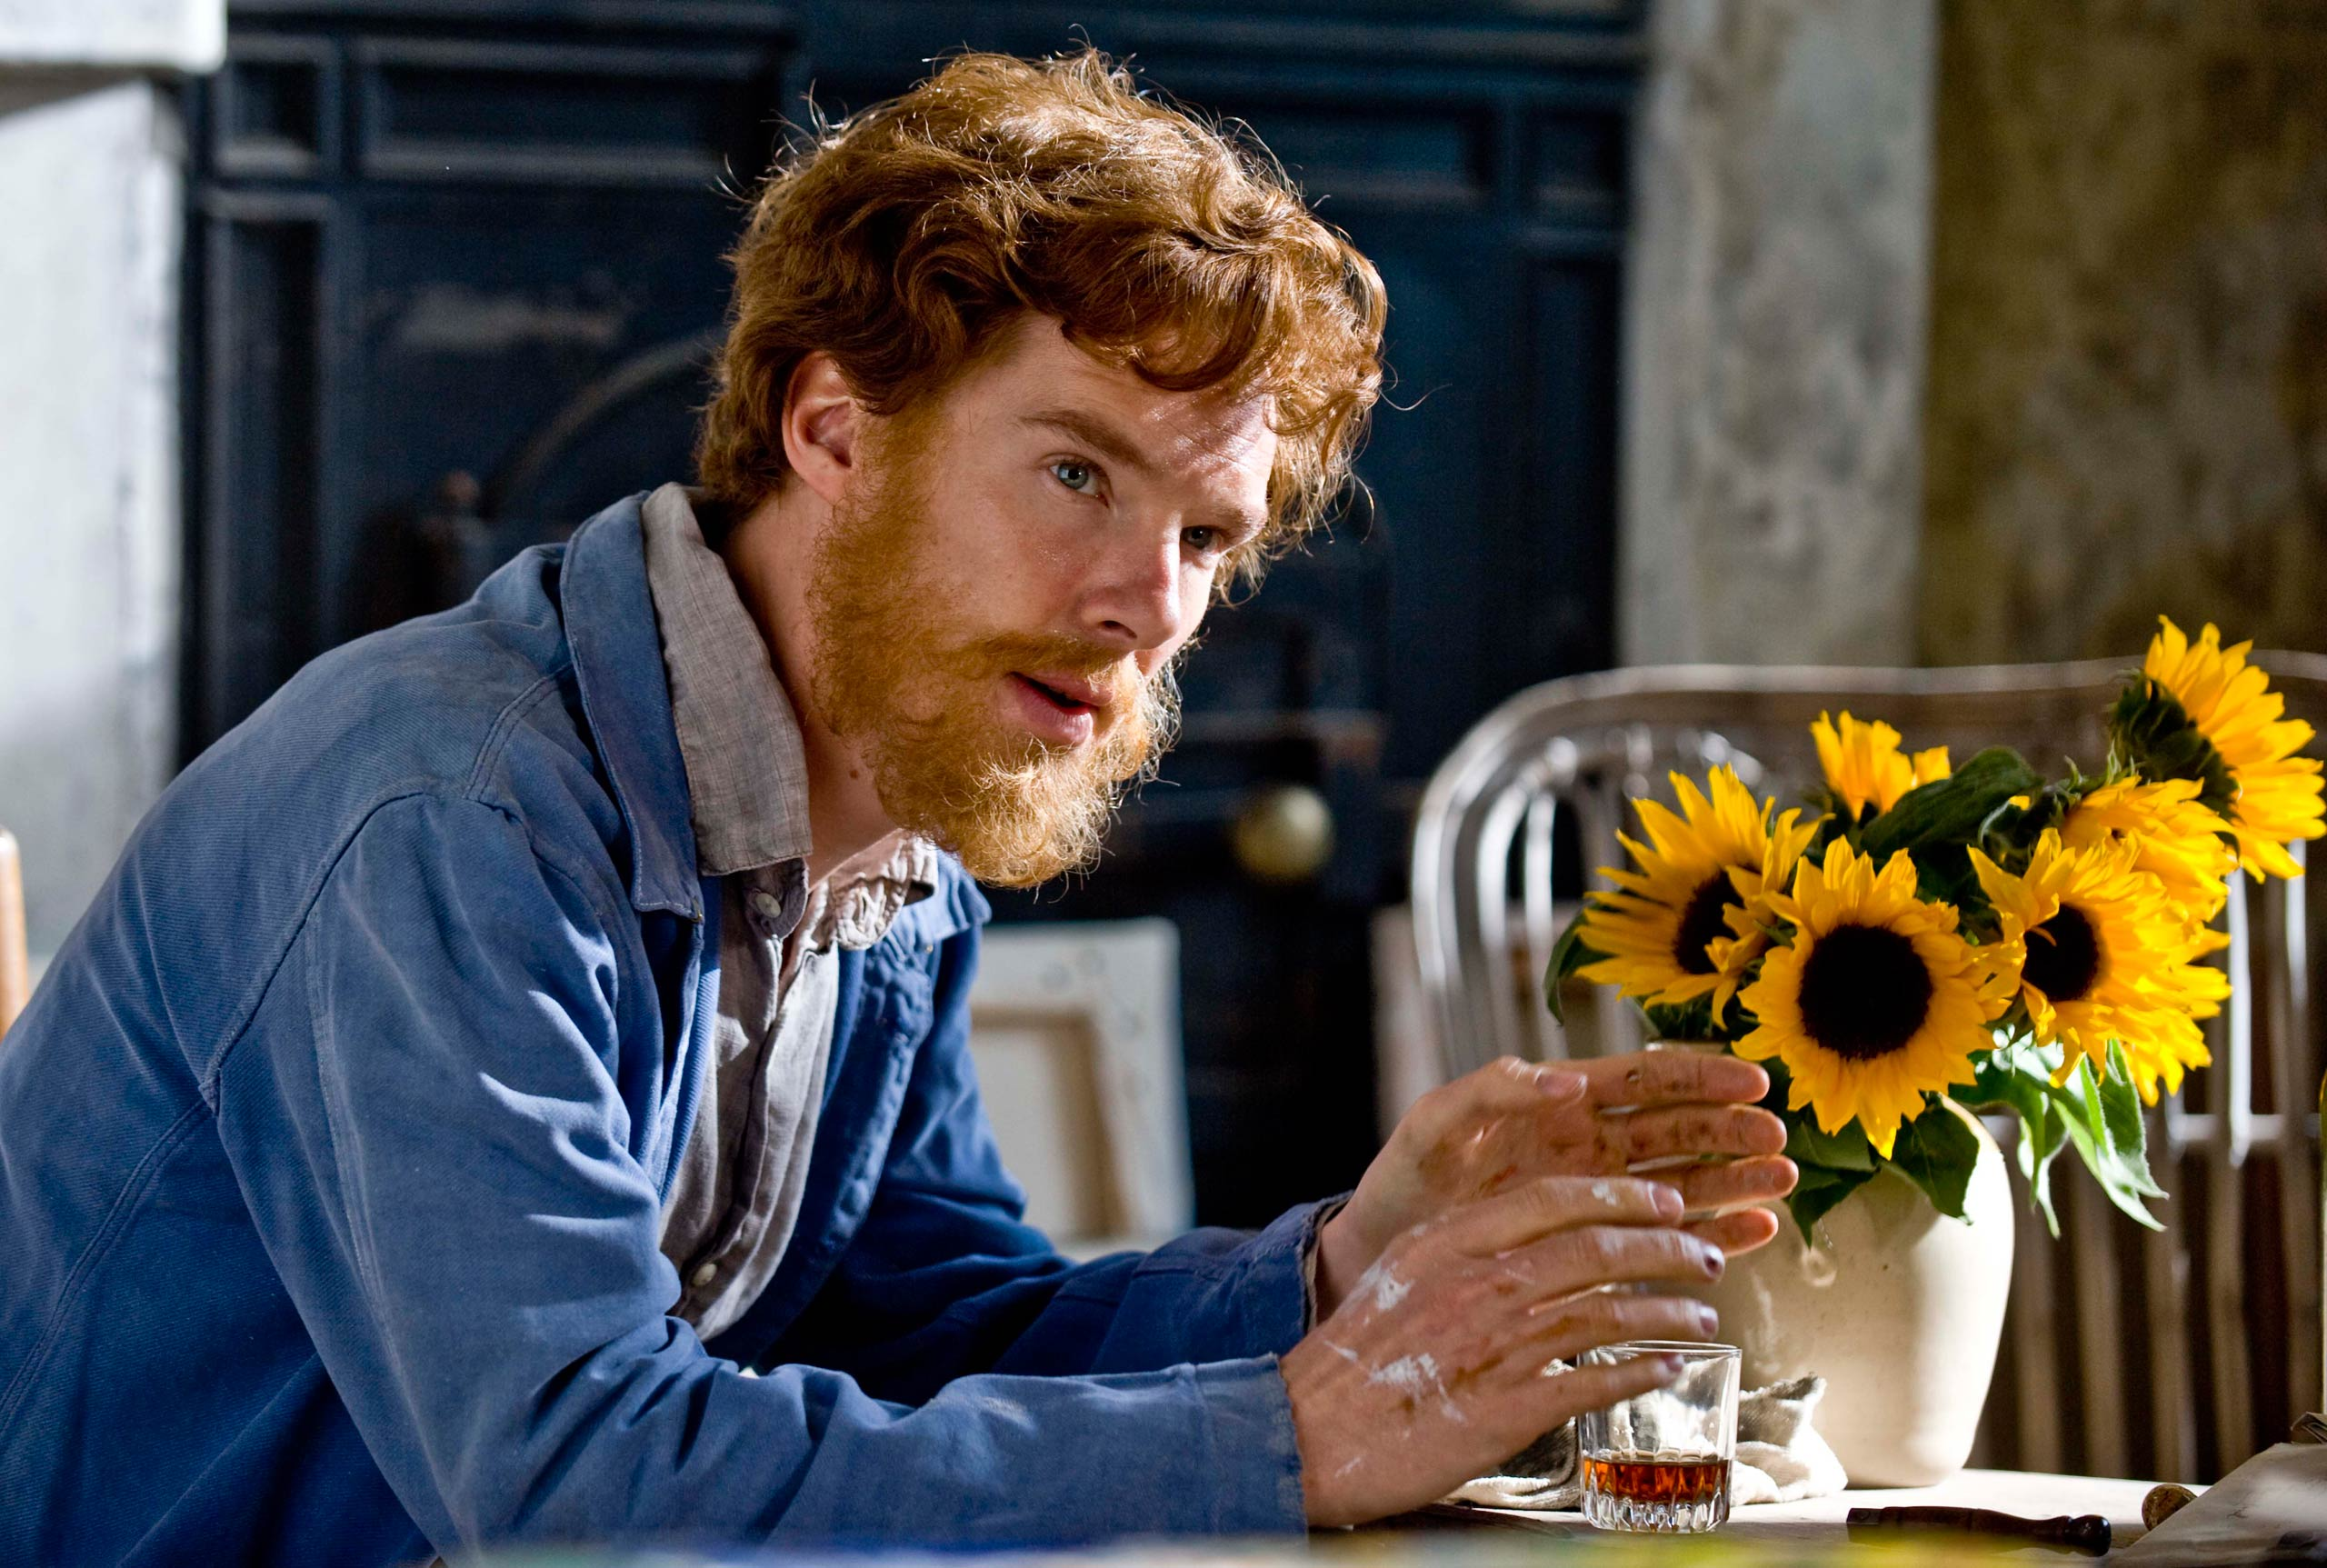 <strong>Van Gogh: Painted with Words</strong> This 2010 docu-drama by the BBC starred Cumberbatch as the tormented Dutch painter Vincent van Gogh.